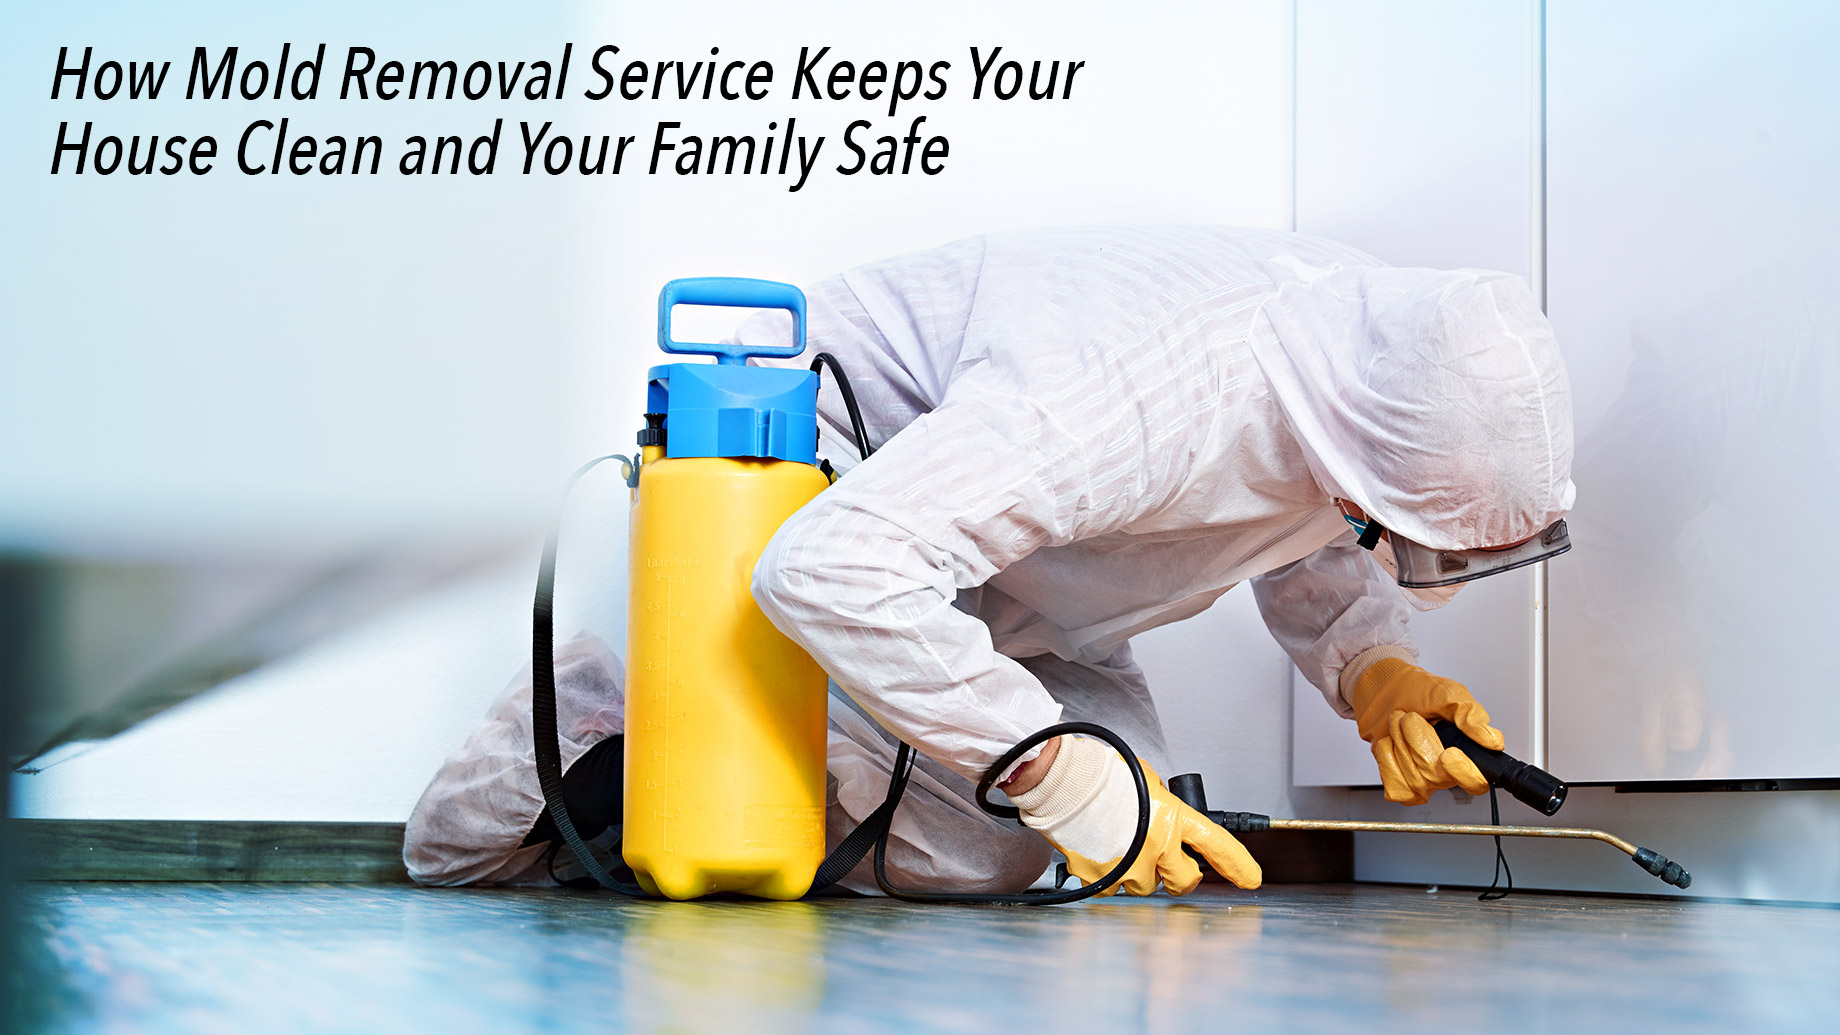 How Mold Removal Service Keeps Your House Clean and Your Family Safe